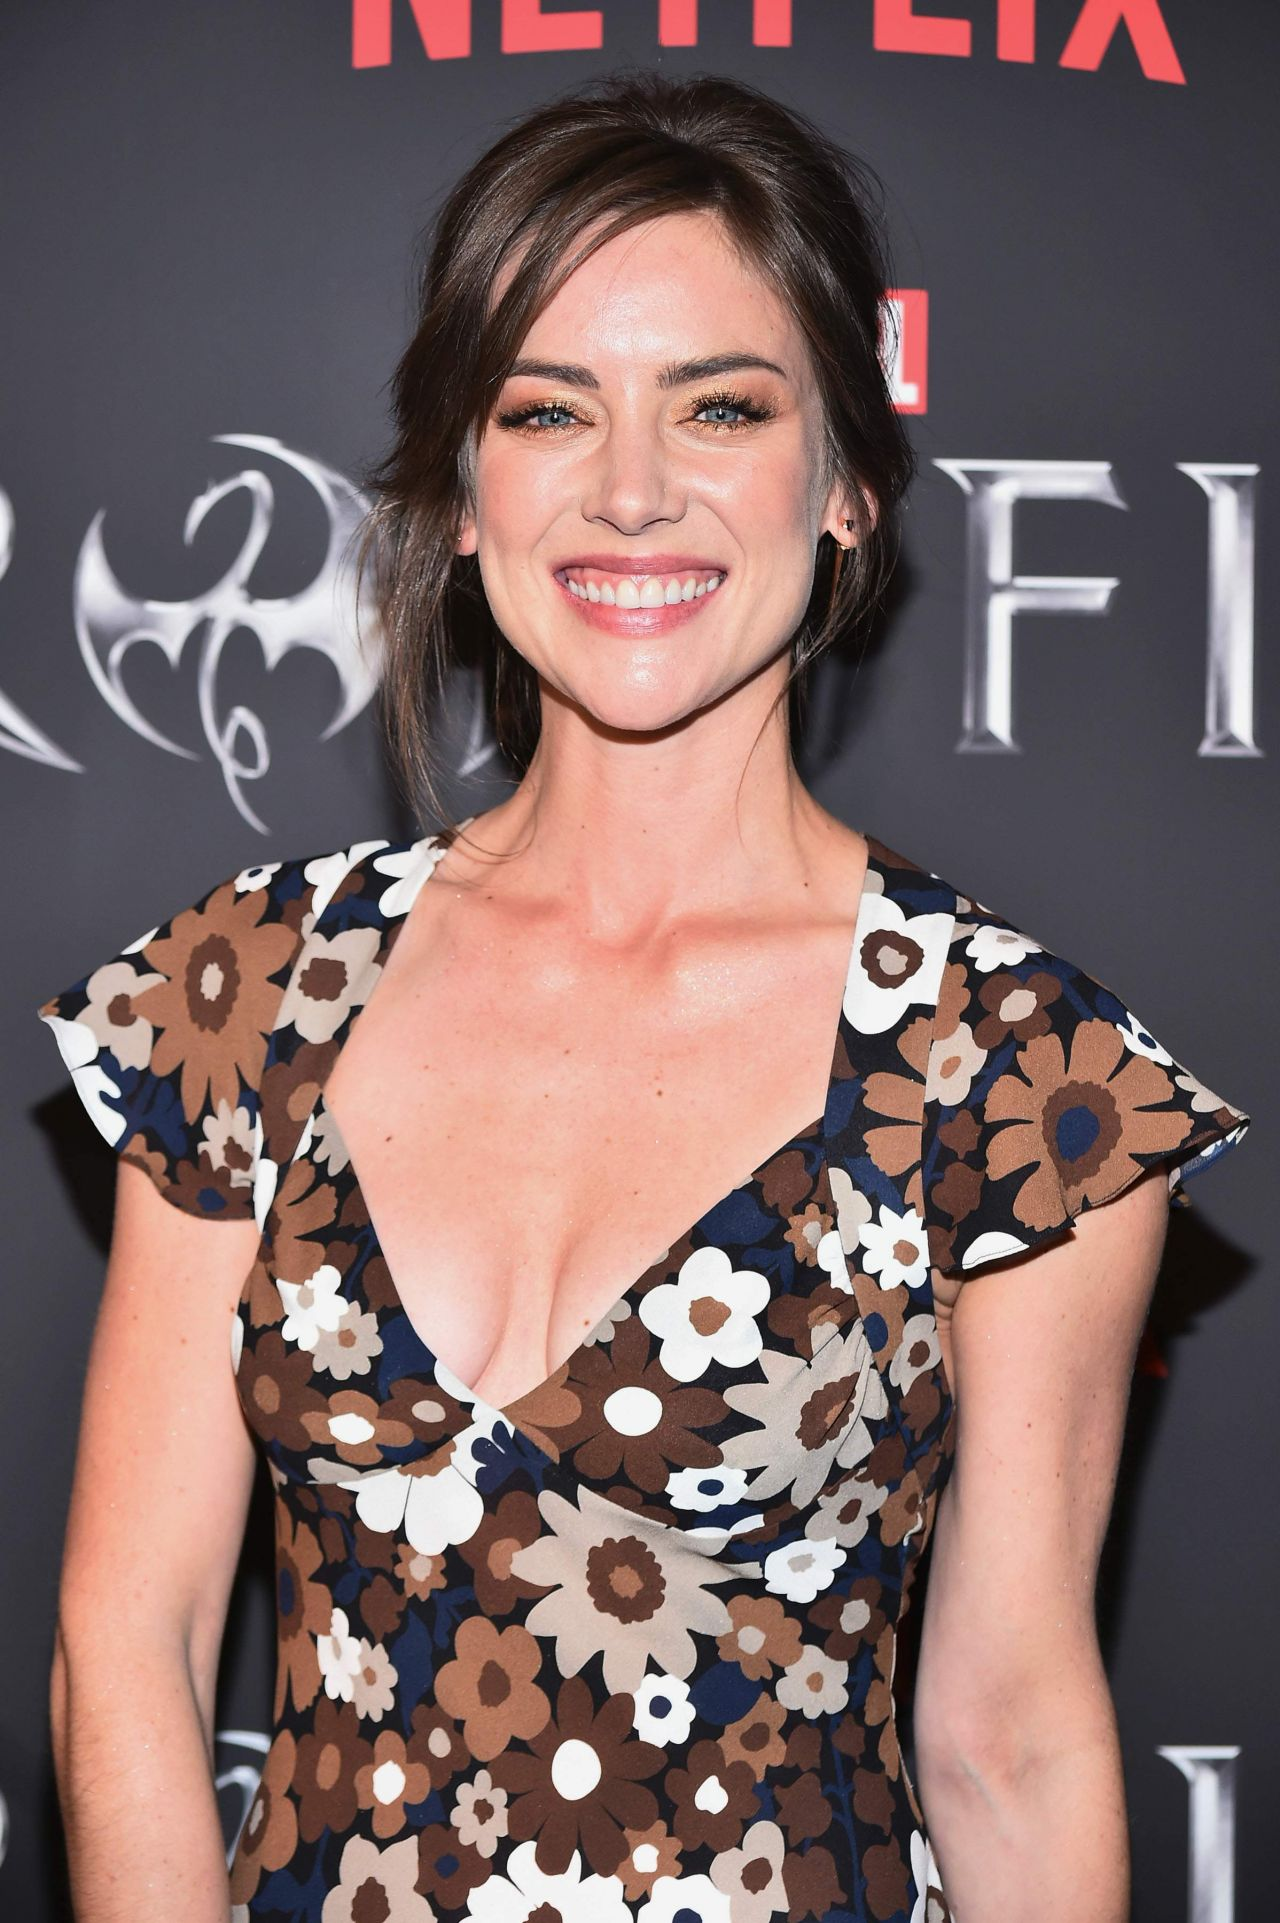 Jessica Stroup Iron Fist Tv Series Premiere In New